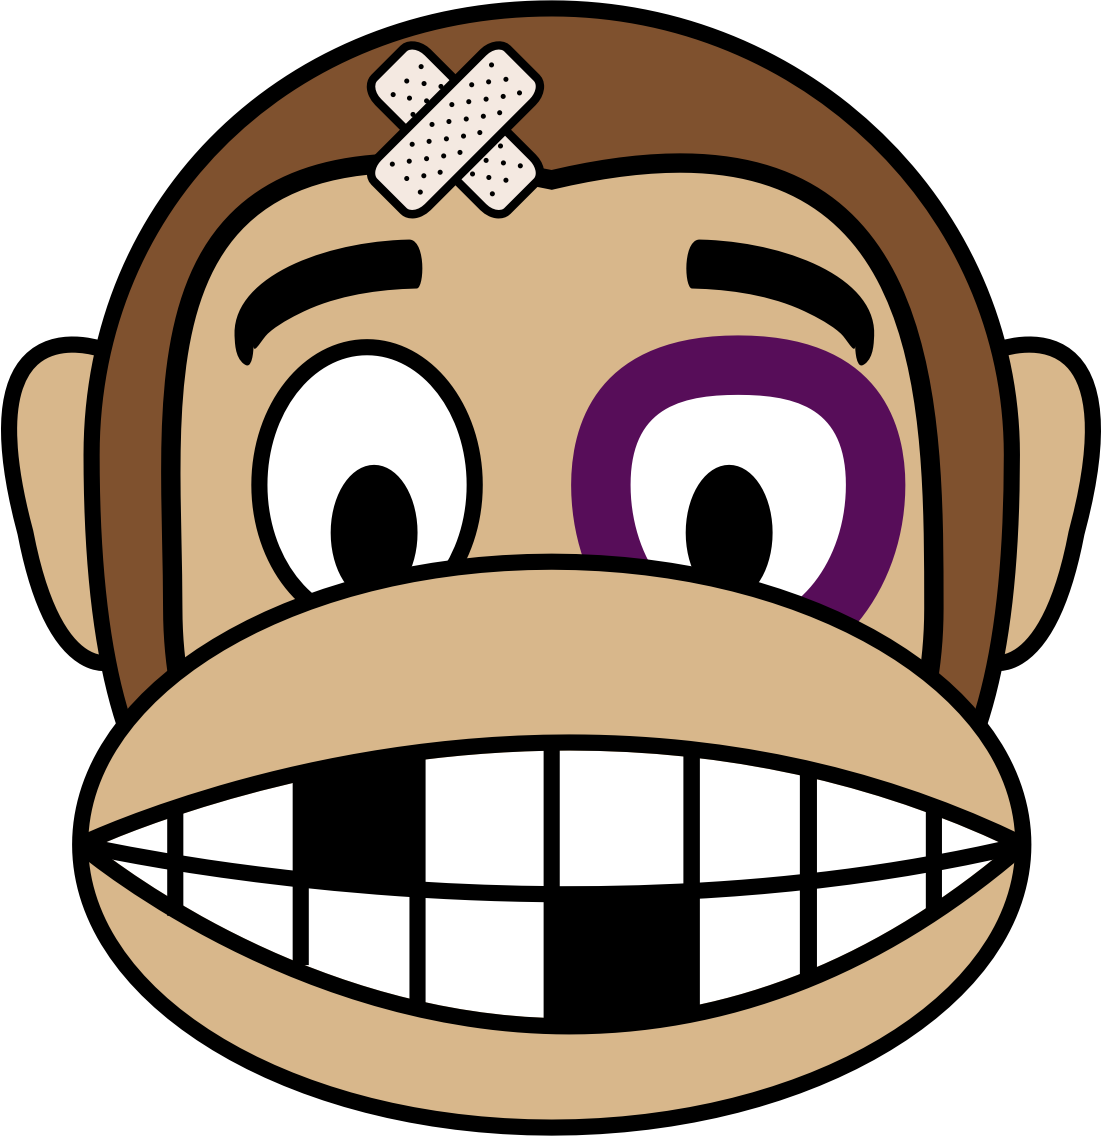 Clipart - Monkey Emoji - Fighter